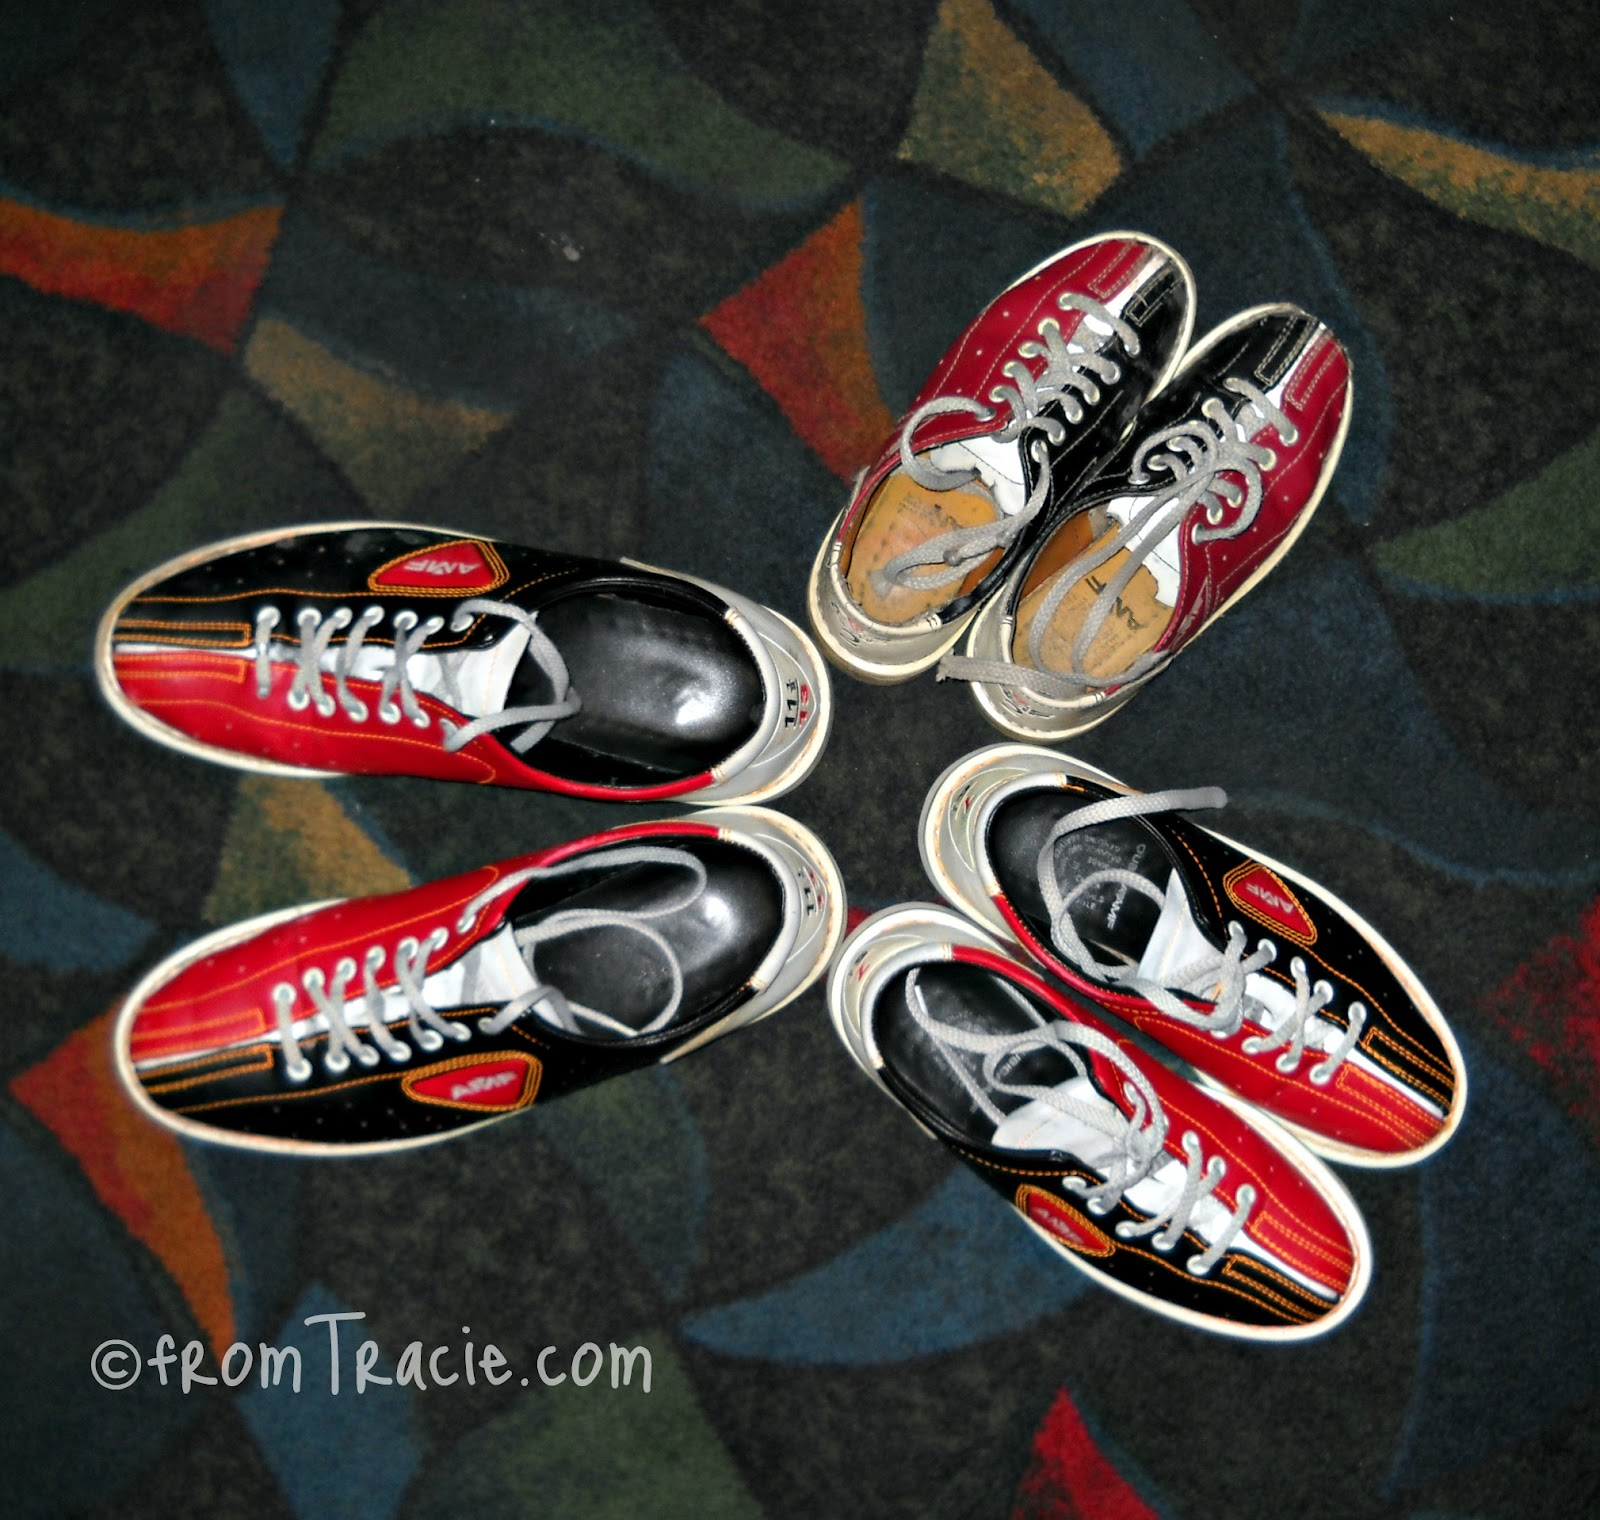 From Tracie: How (NOT) To Bowl